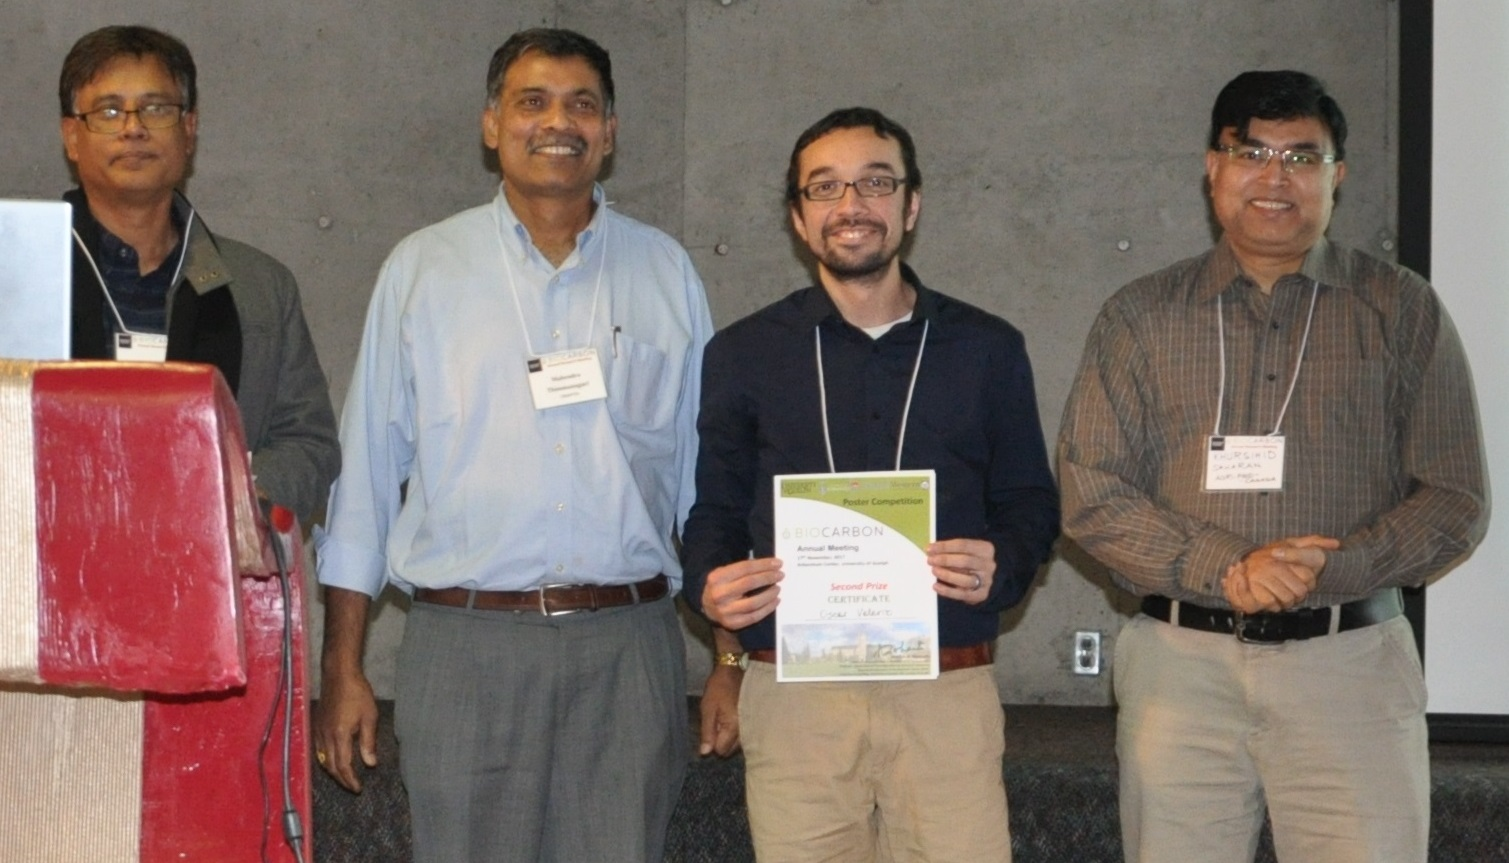 Biocarbon Research Meeting Poster Awards - Second Place